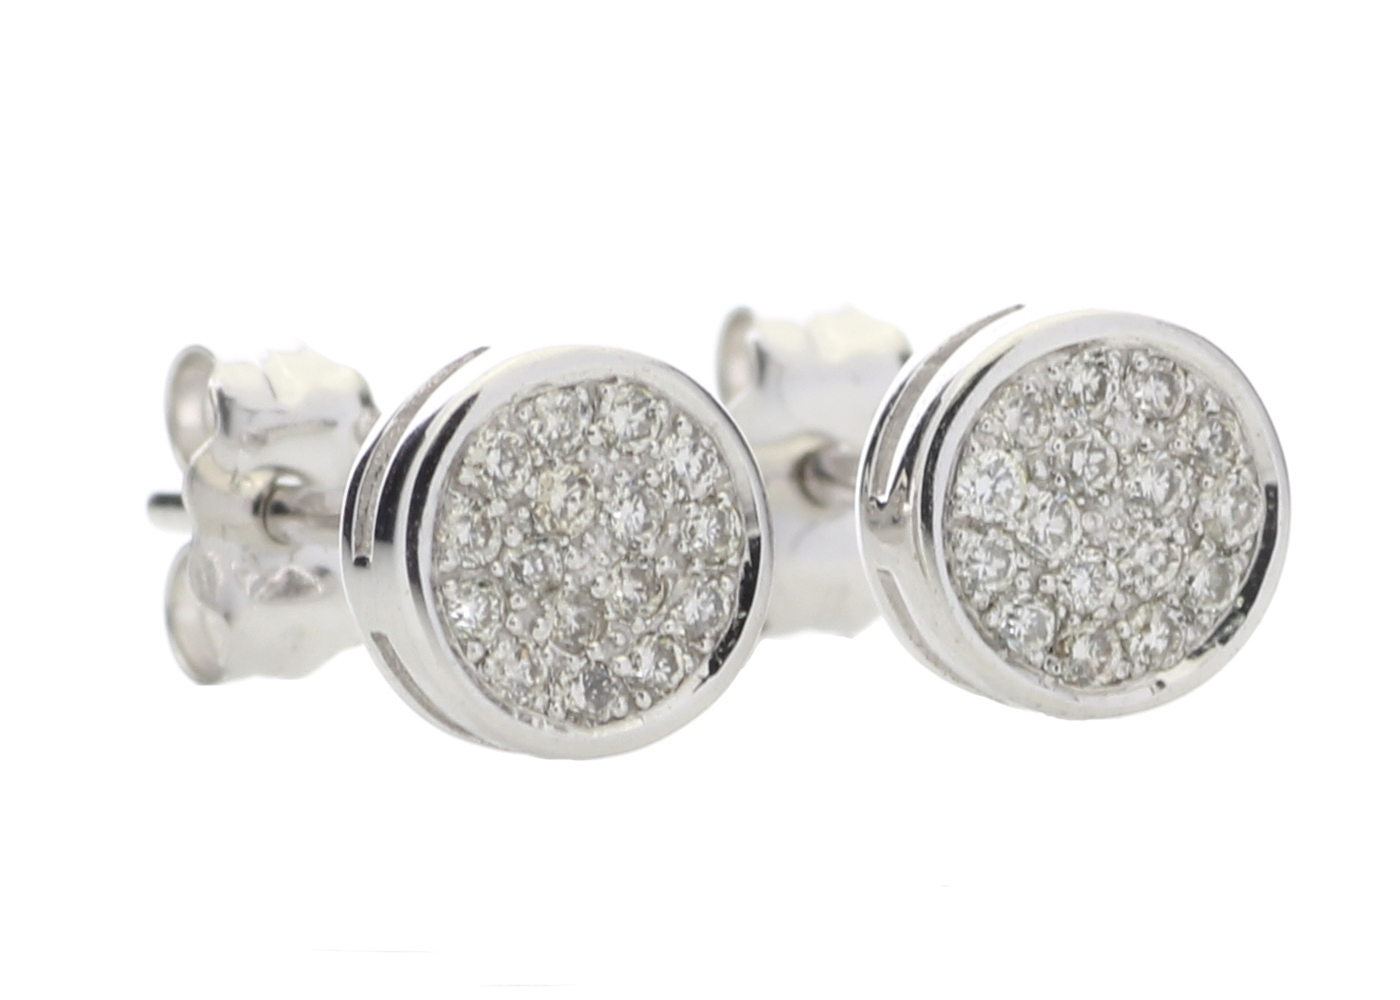 9ct White Gold Diamond Cluster Earring 0.16 Carats - Image 4 of 4